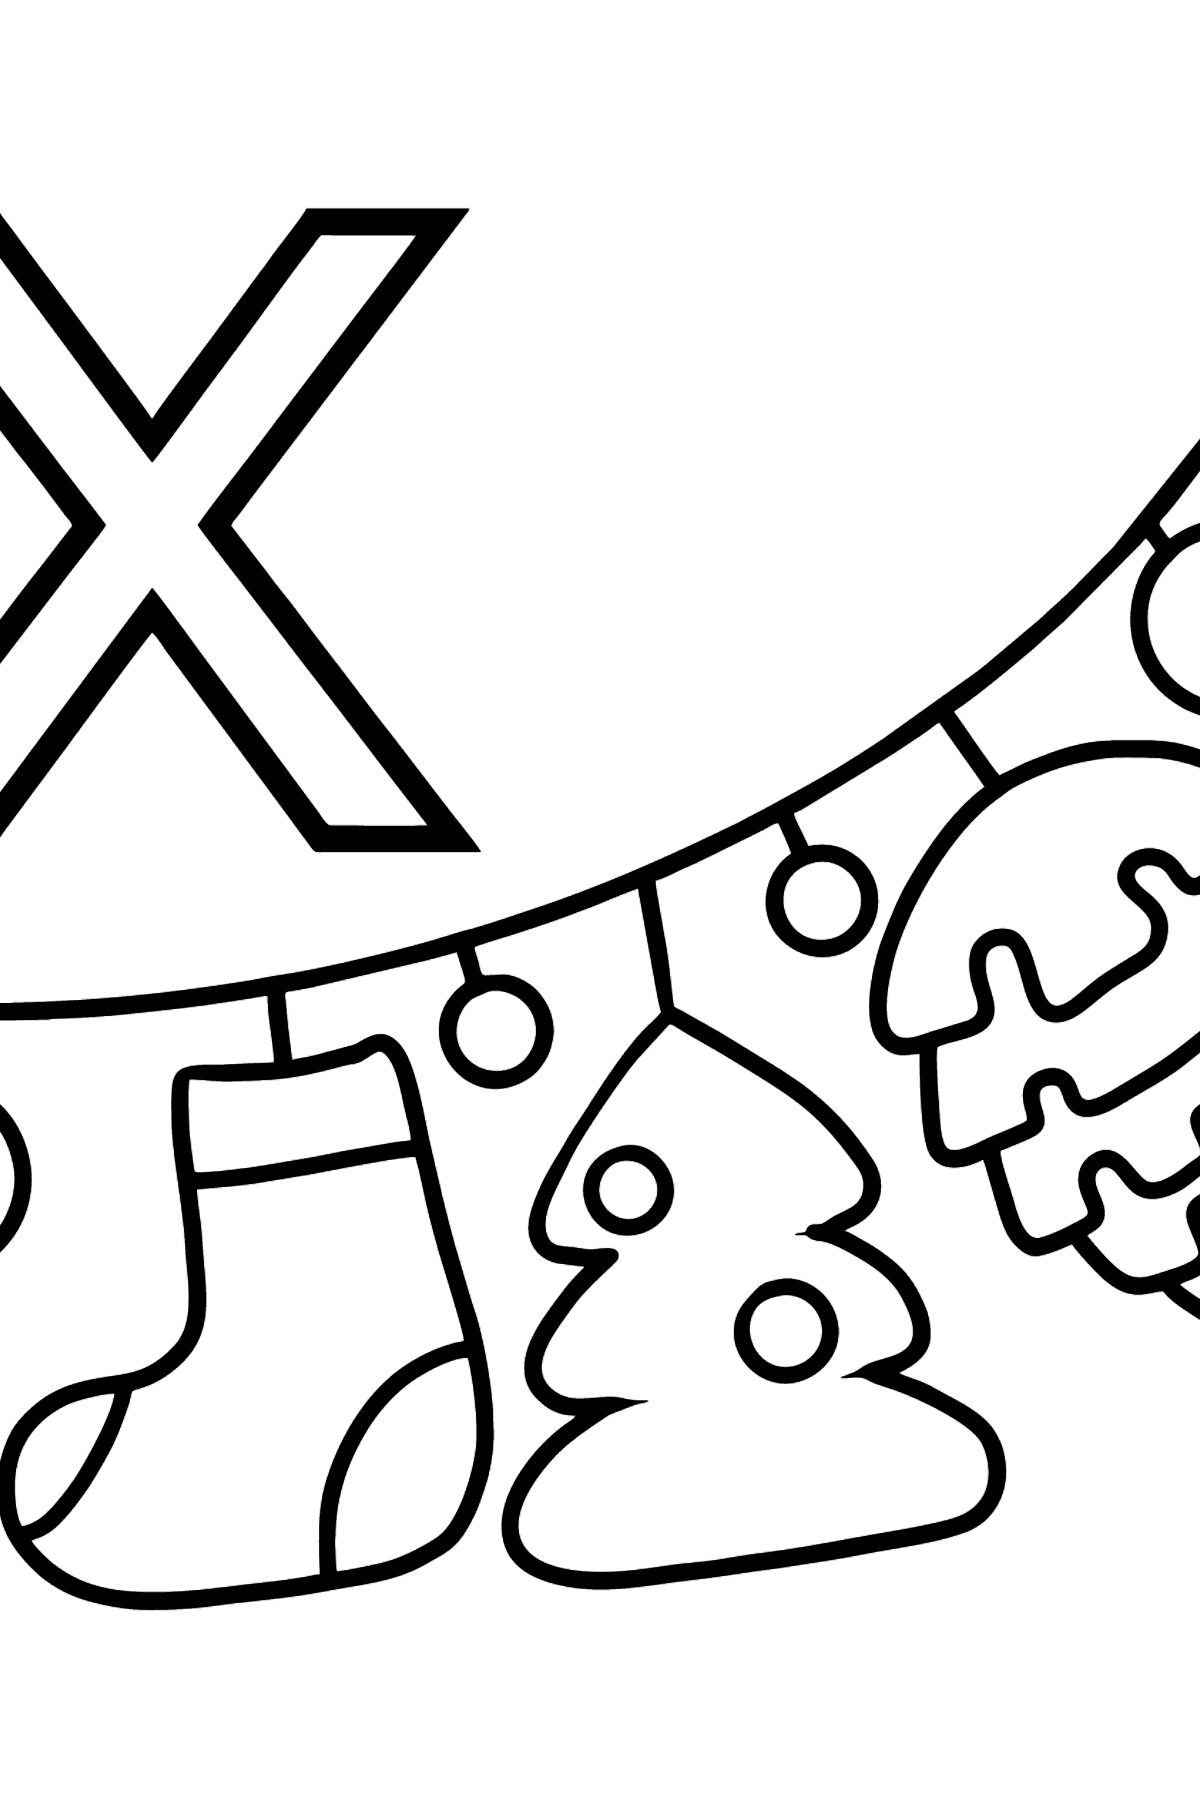 English Letter X coloring pages - XMAS (CHRISTMAS) - Coloring Pages for Kids